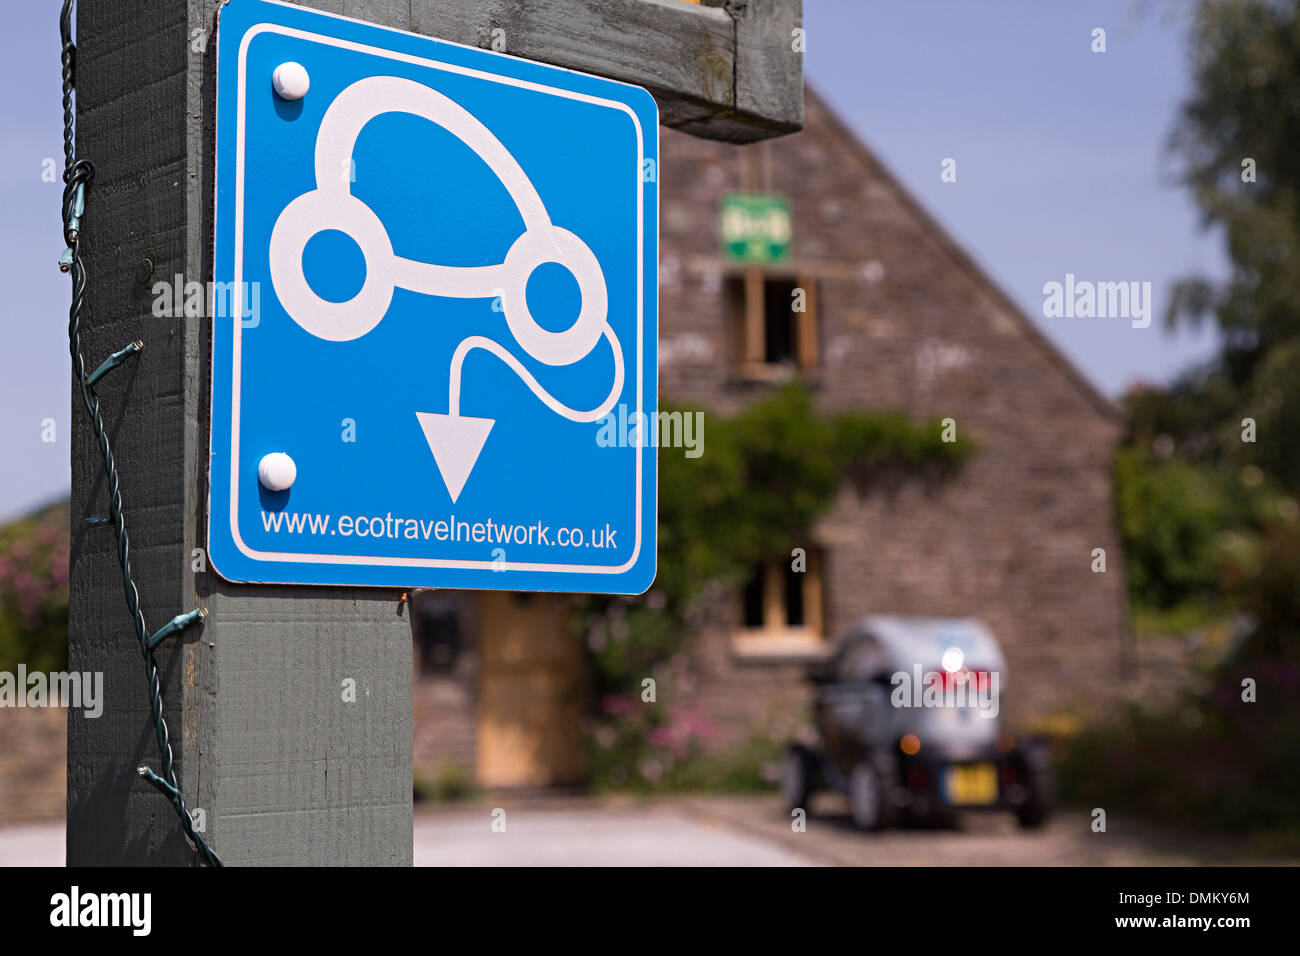 Eco travel network sign with ecological car in background, Talgarth, Wales, UK - Stock Image